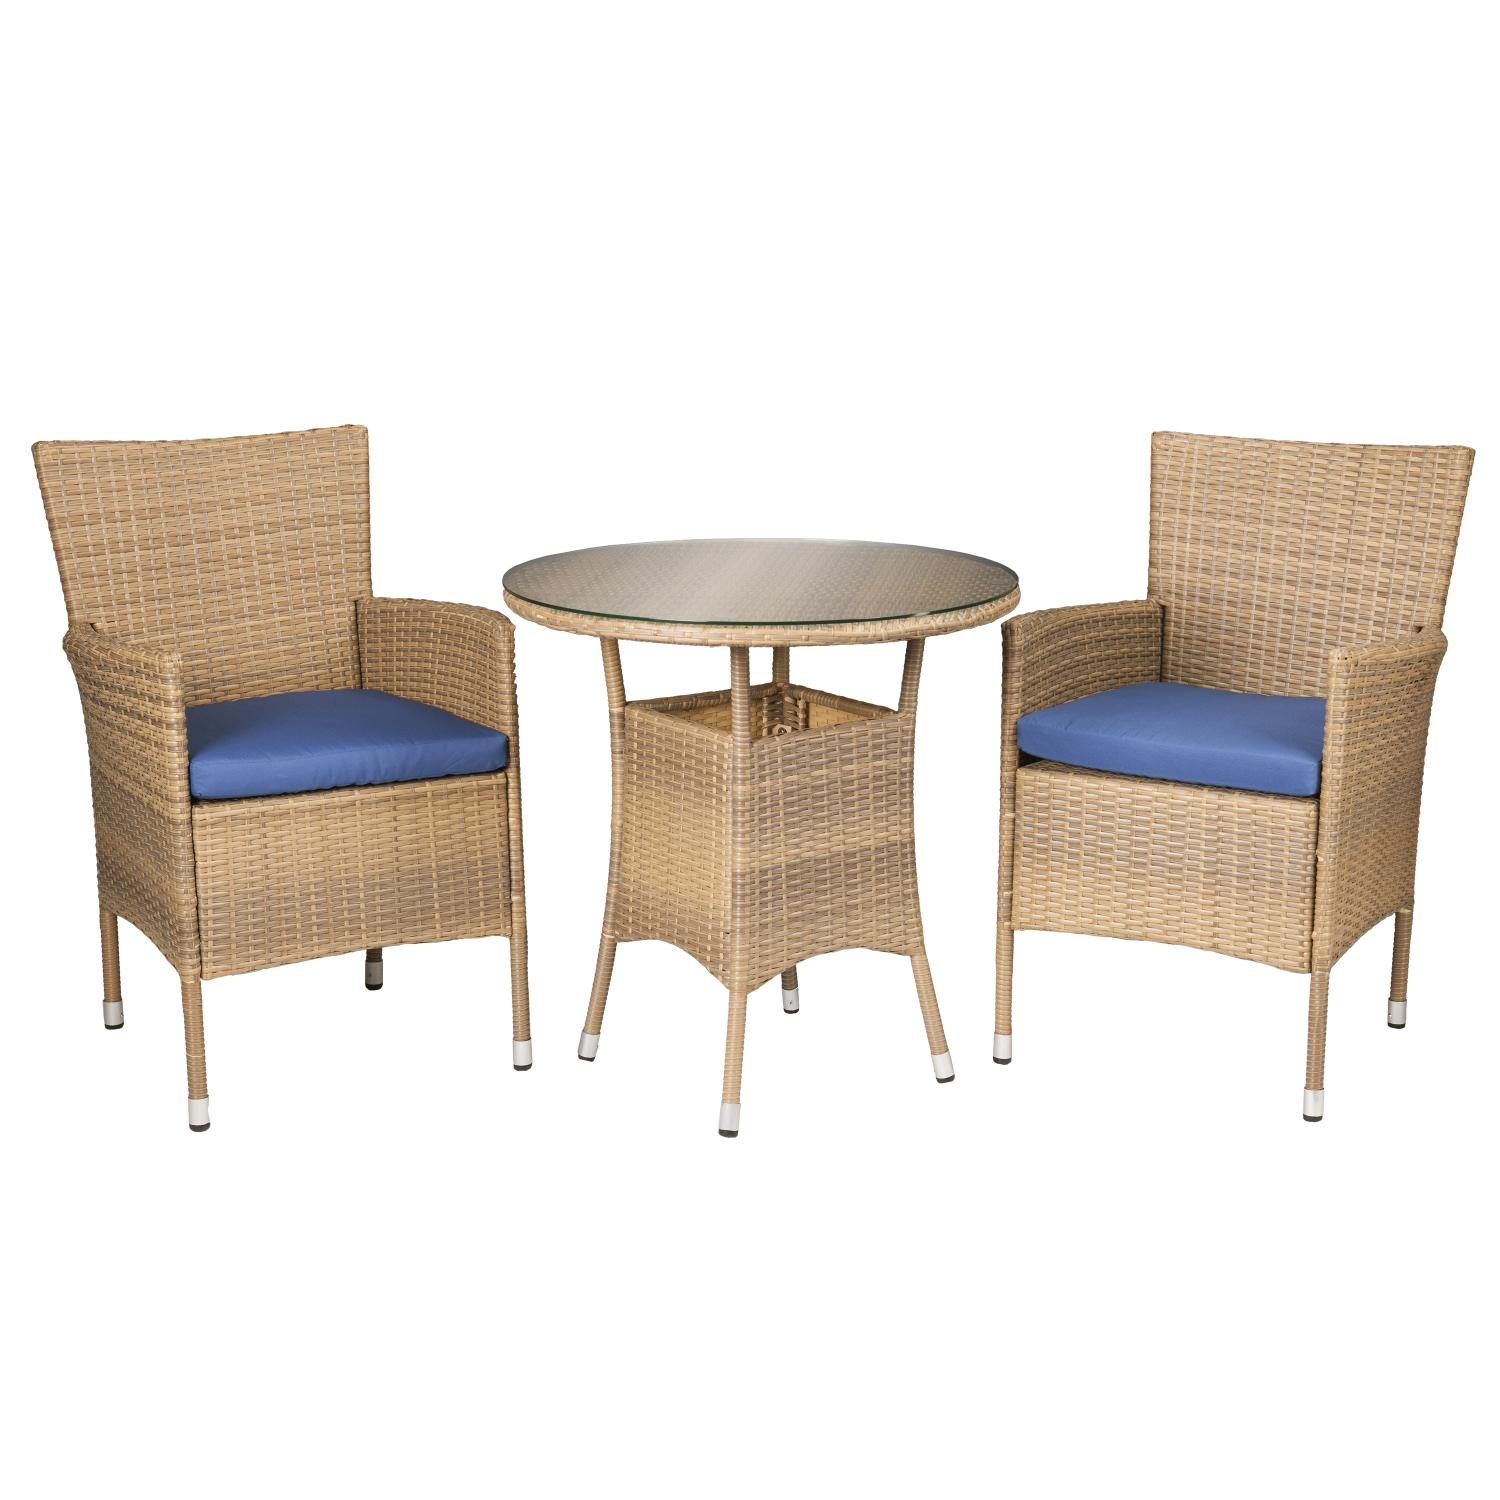 Veda Outdoor Seating 3Pc Set